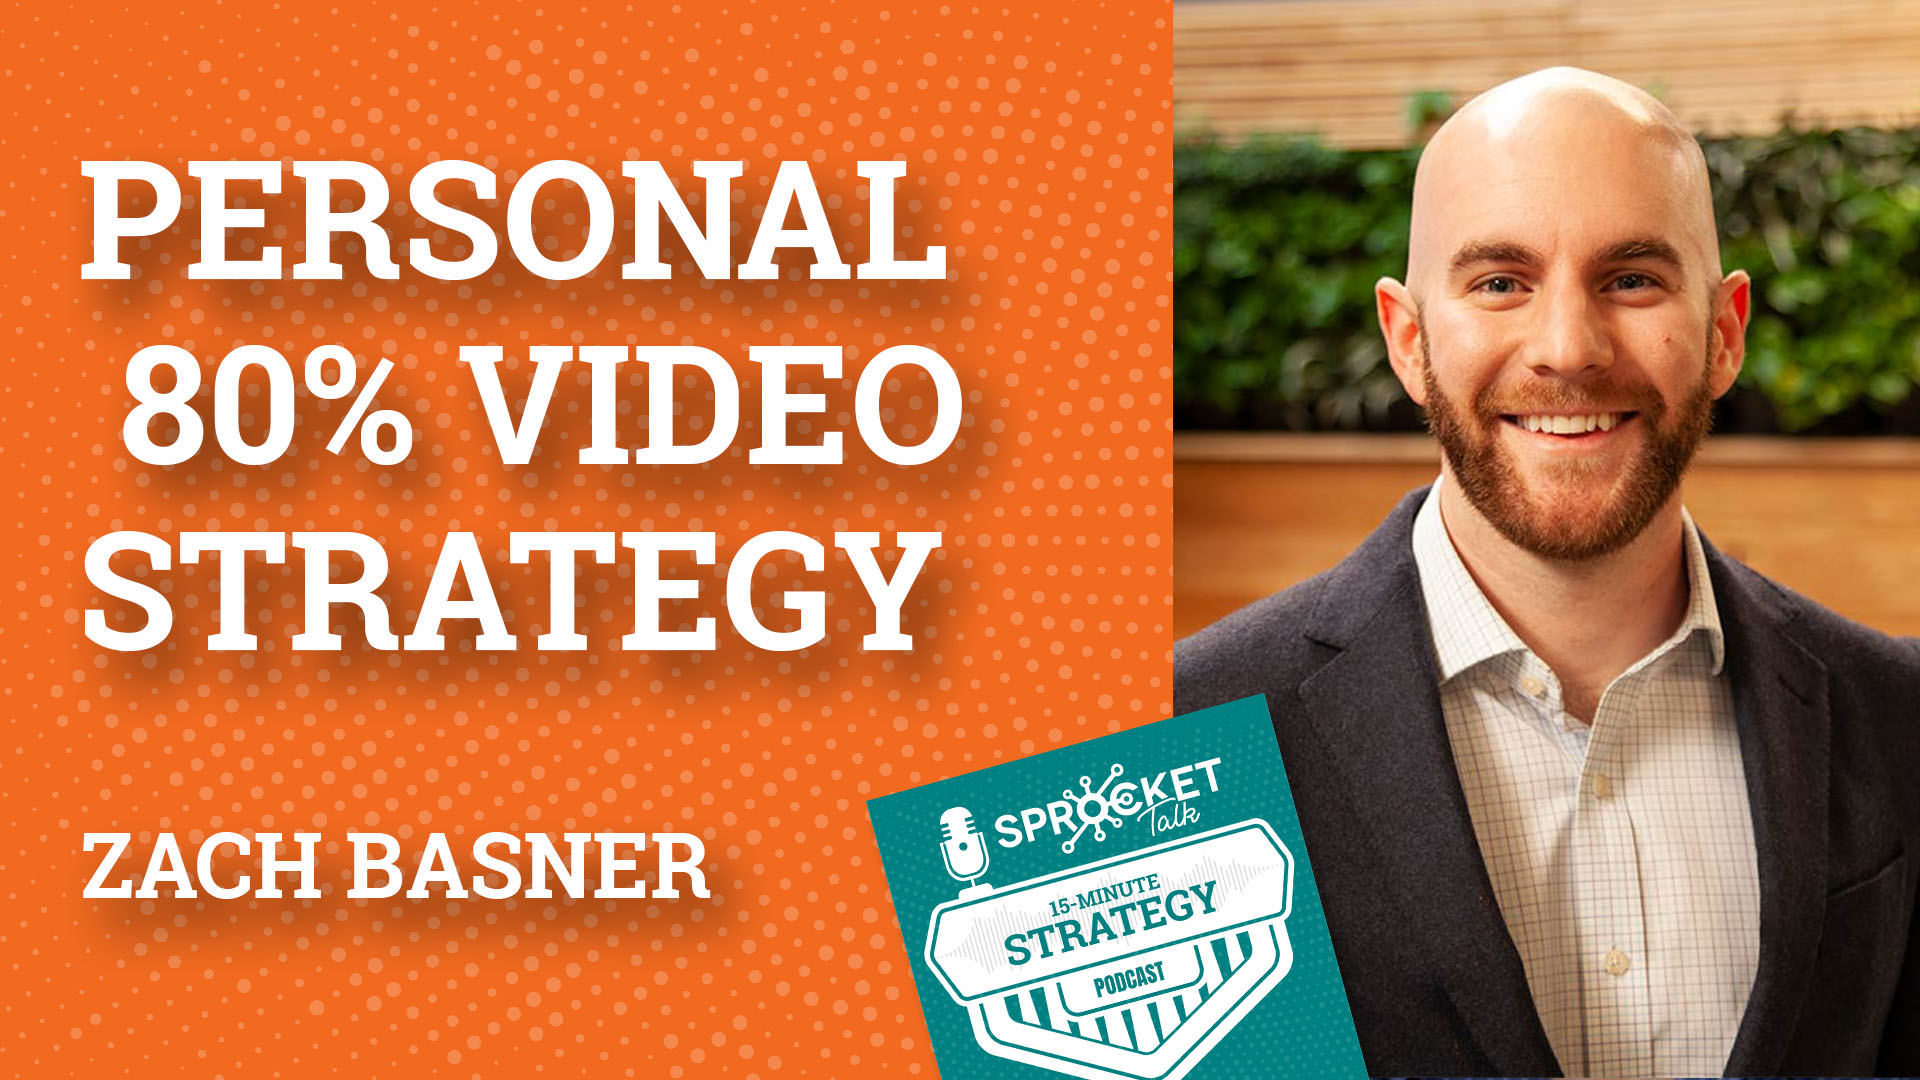 Zach Basner on a Personalized and 80% Video Strategy | 15-Minute Strategy Podcast